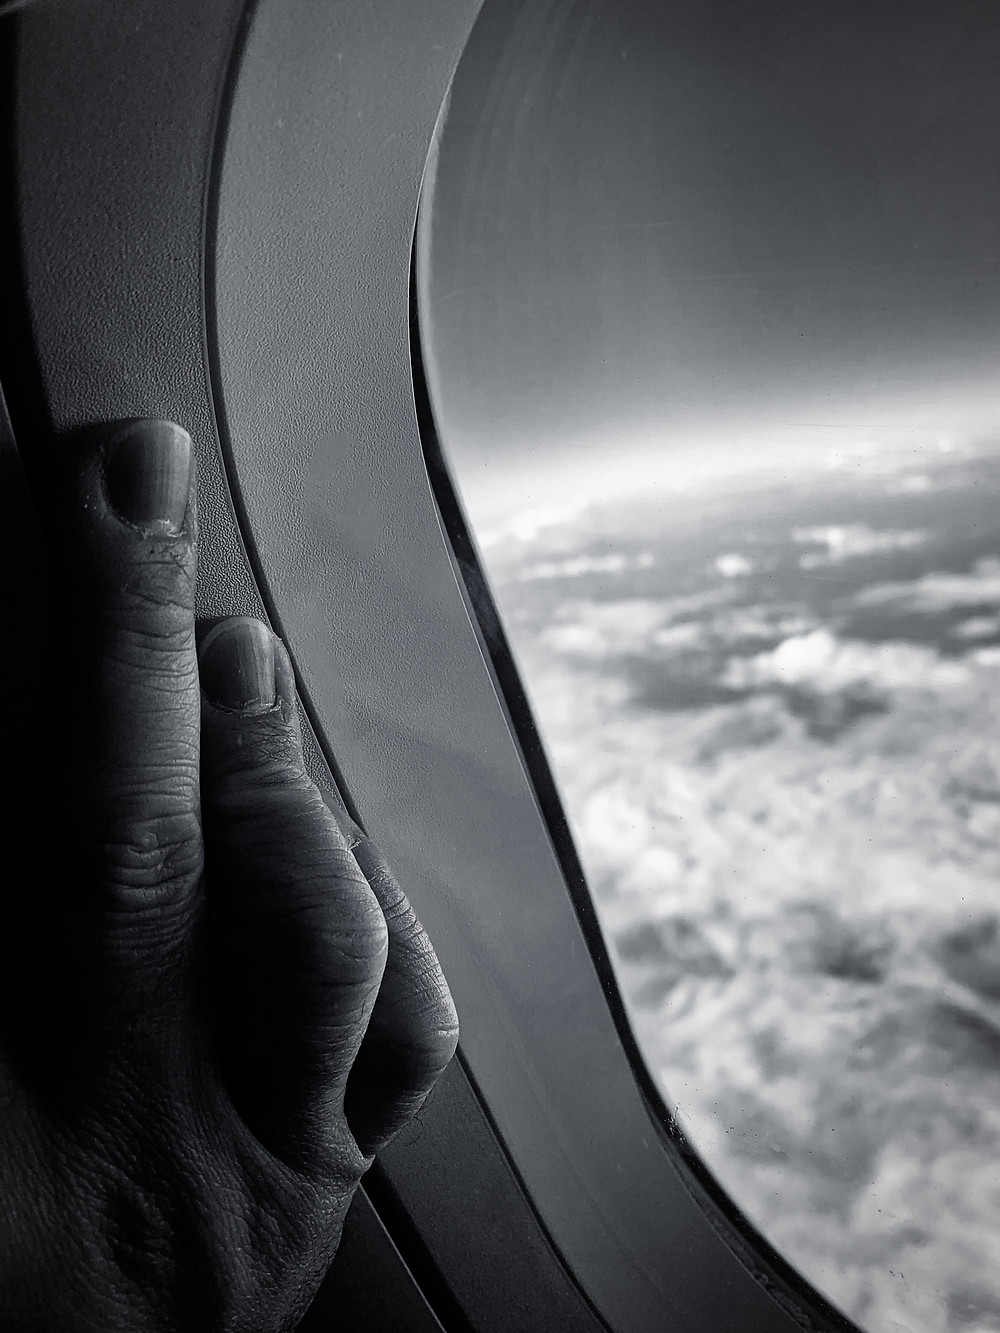 Fear of Flying - I have always been a little afraid of flying, yet I always ask for a window seat. I have been inspired by the book Window Seat by Julianne Kost, who says you should always ask for a window seat if you are a photographer, as the air and the ground will forever bring you numerous opportunities to get great photos. There is also an element of the Twilight Zone on this piece, where you see the tension of the hand holding on to the window...